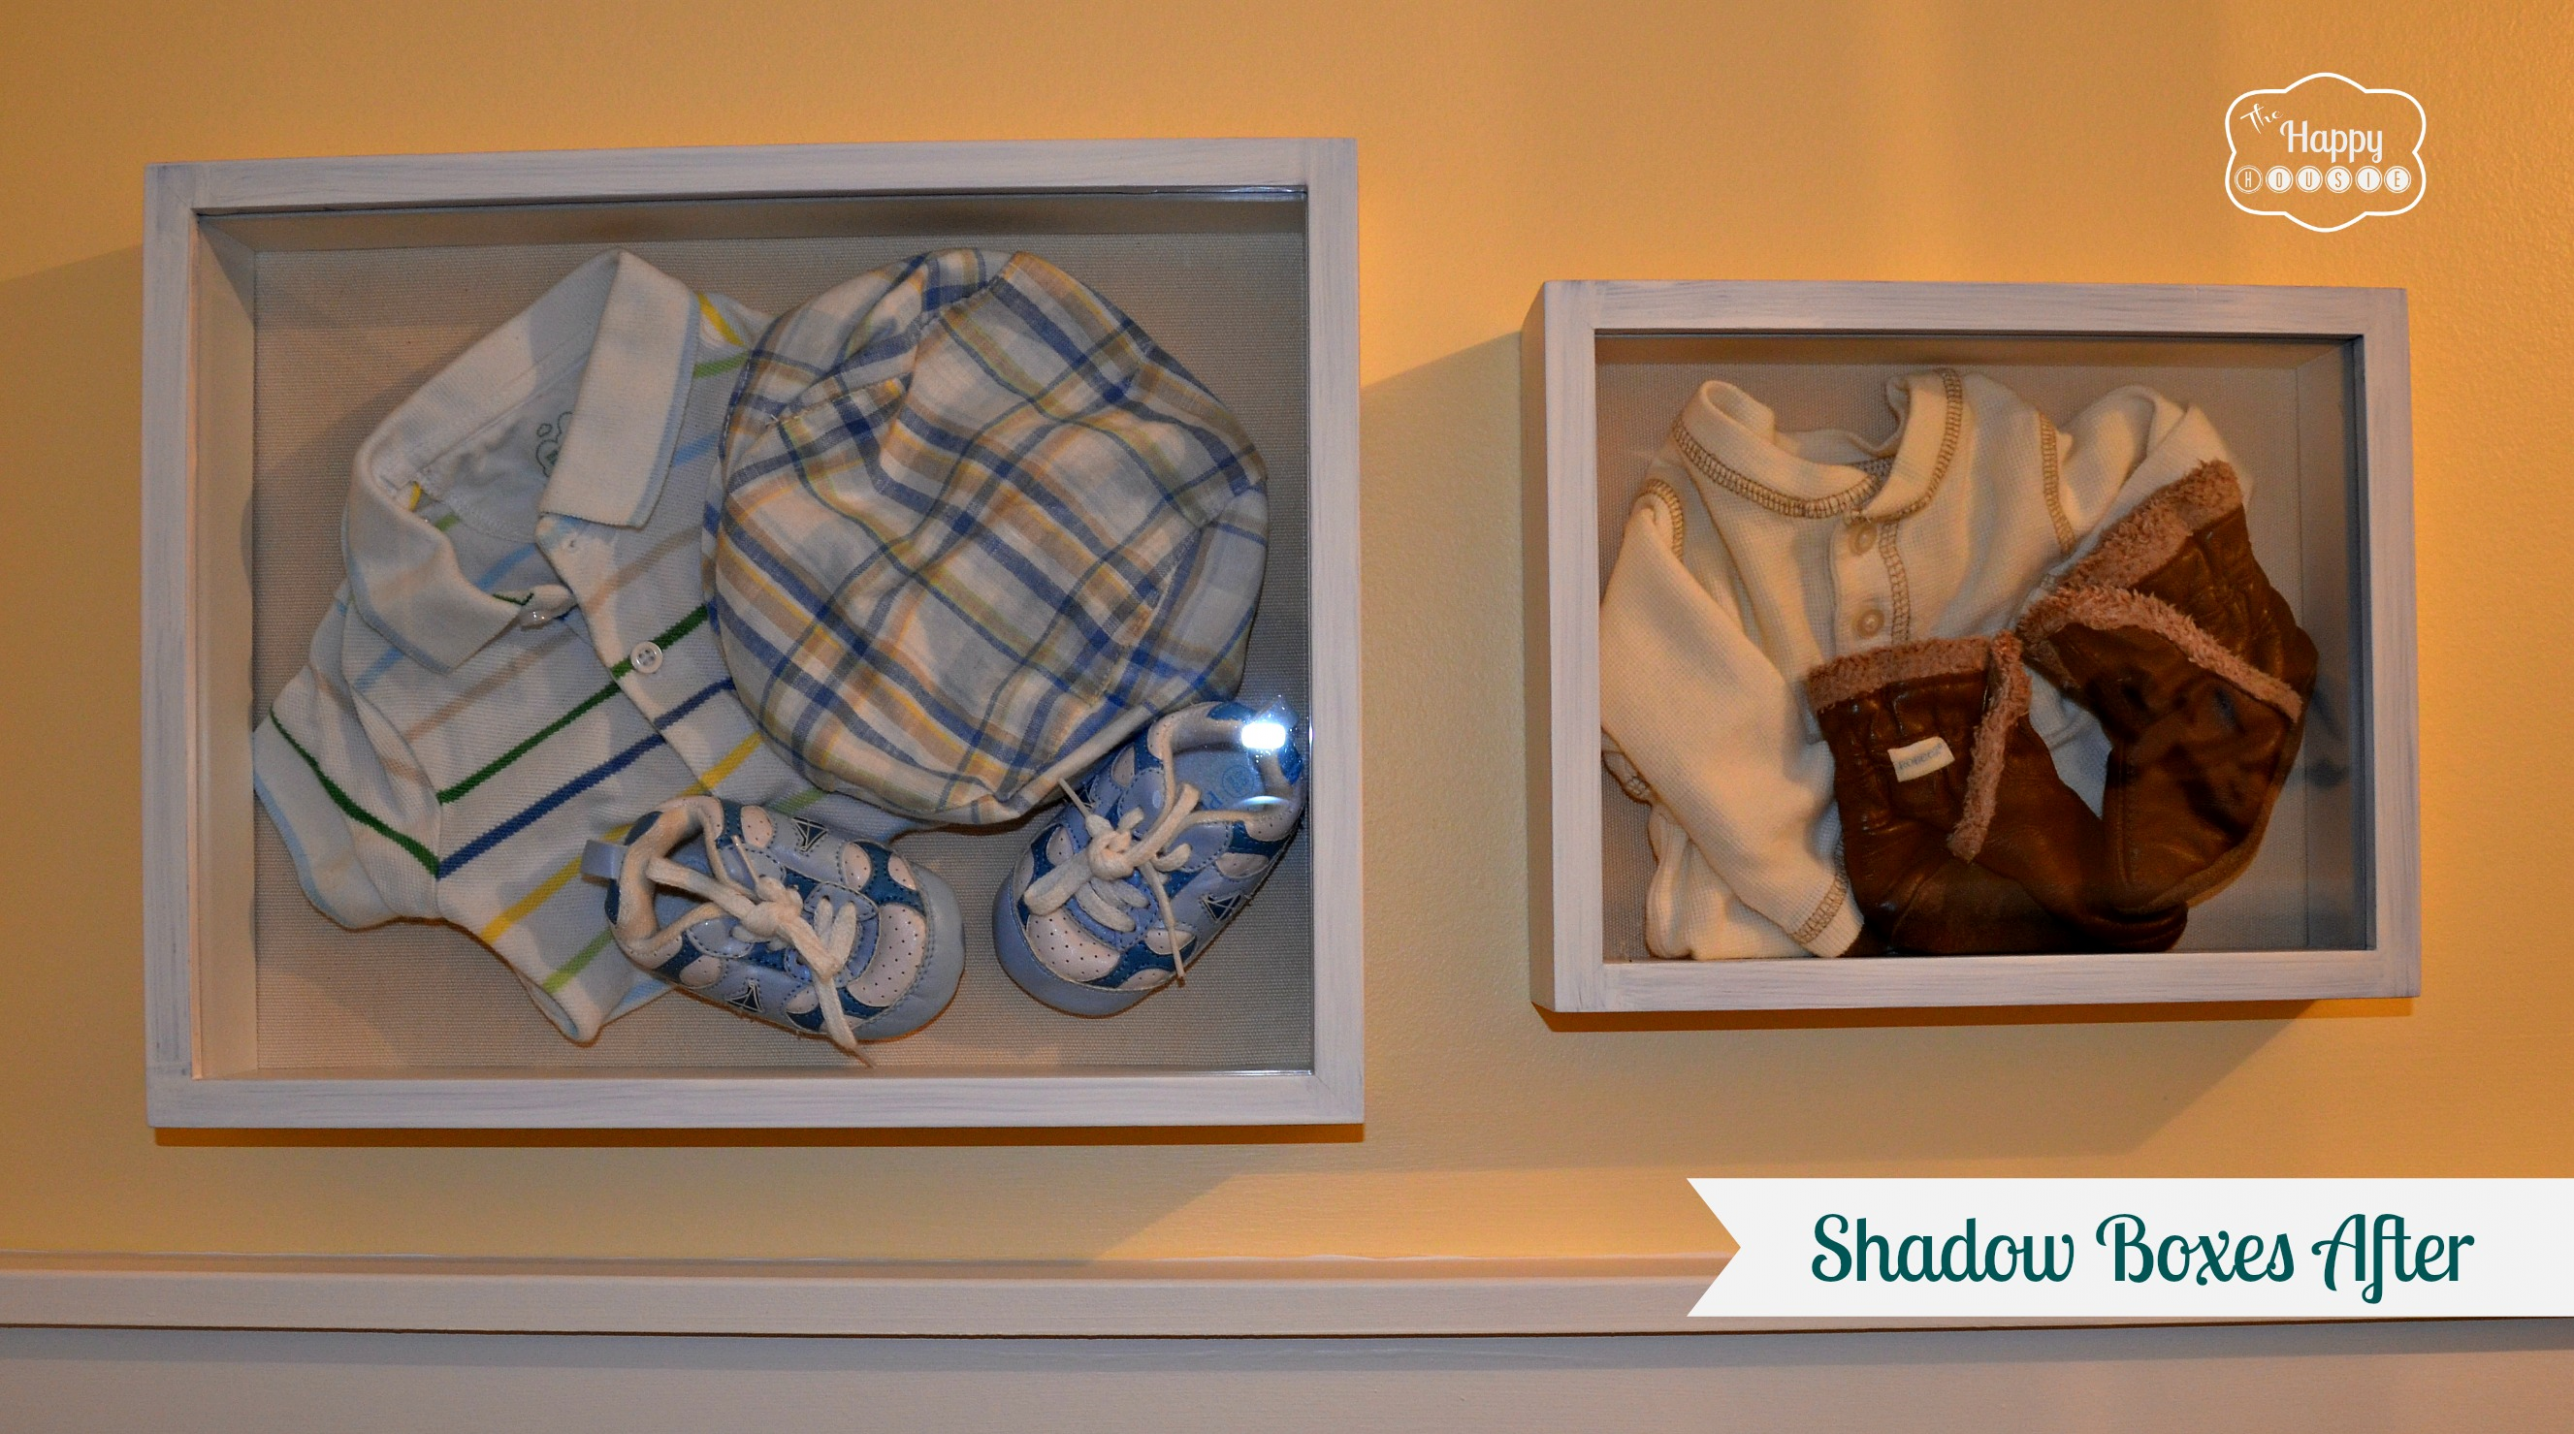 Decorating: Some DIY Art for the Laundry Room | The Happy Housie